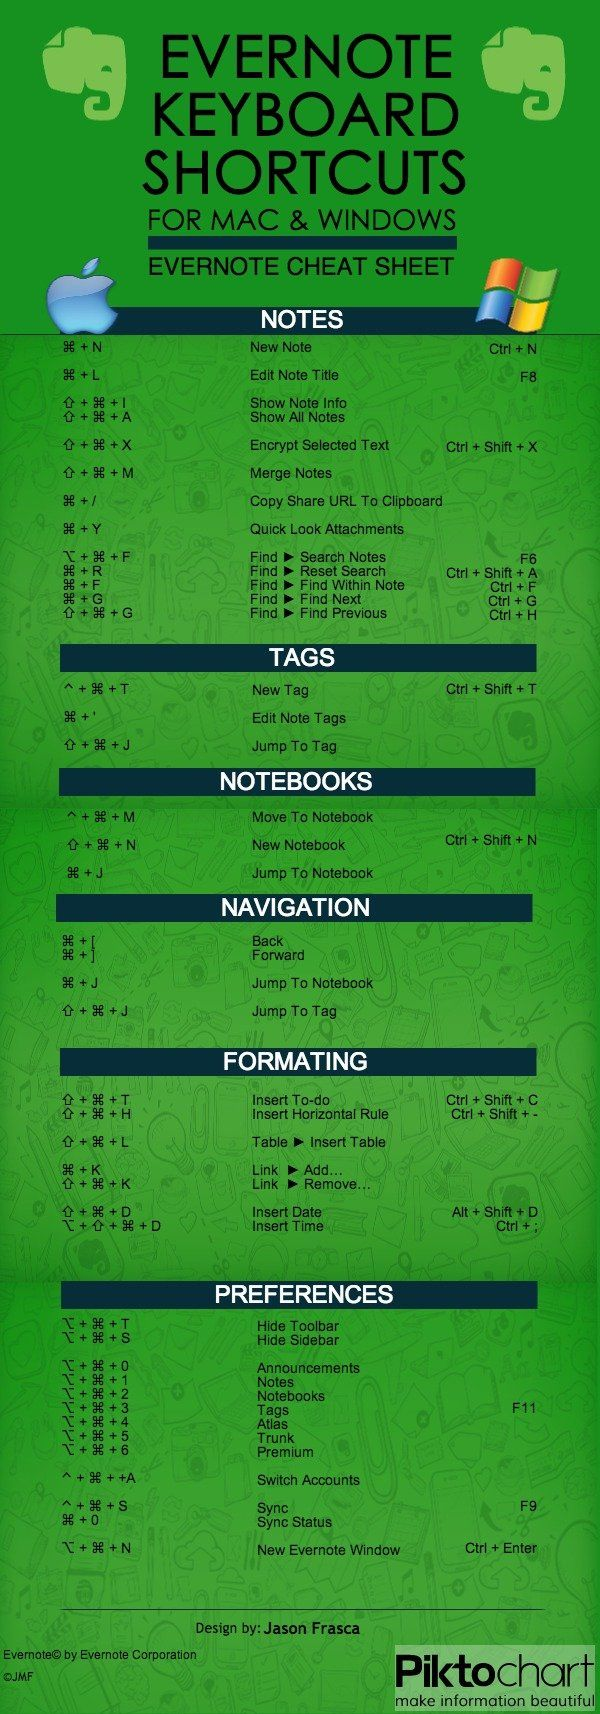 Evernote Keyboard Shortcuts for Mac & Windows Cheat Sheet Repinned by www.goodinklings.com #evernote #goodinklings #organizationtips